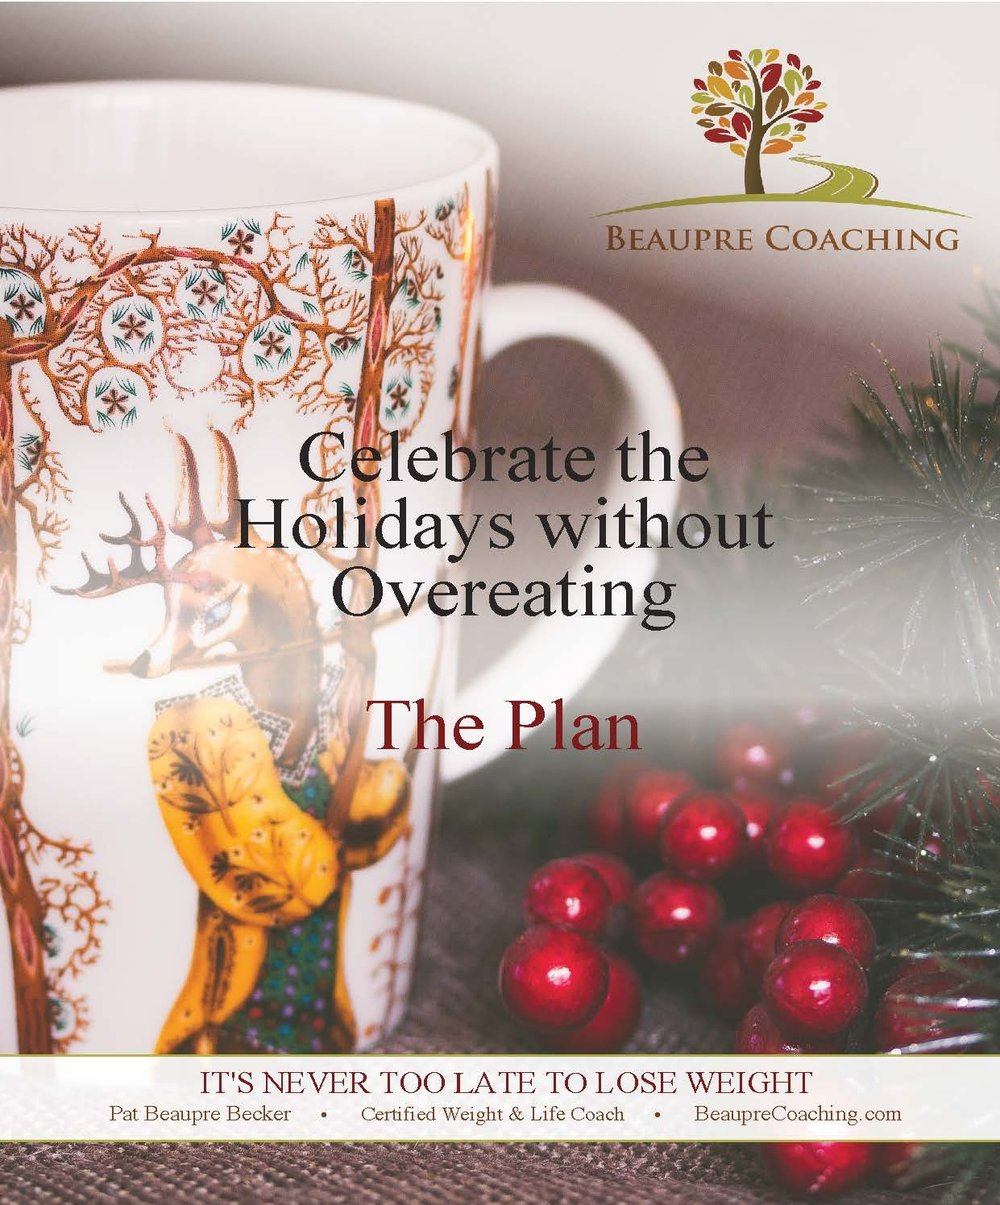 Sign up to get your guide to creating your very own plan to Celebrate the Holidays without Overeating - GET IT HERE!